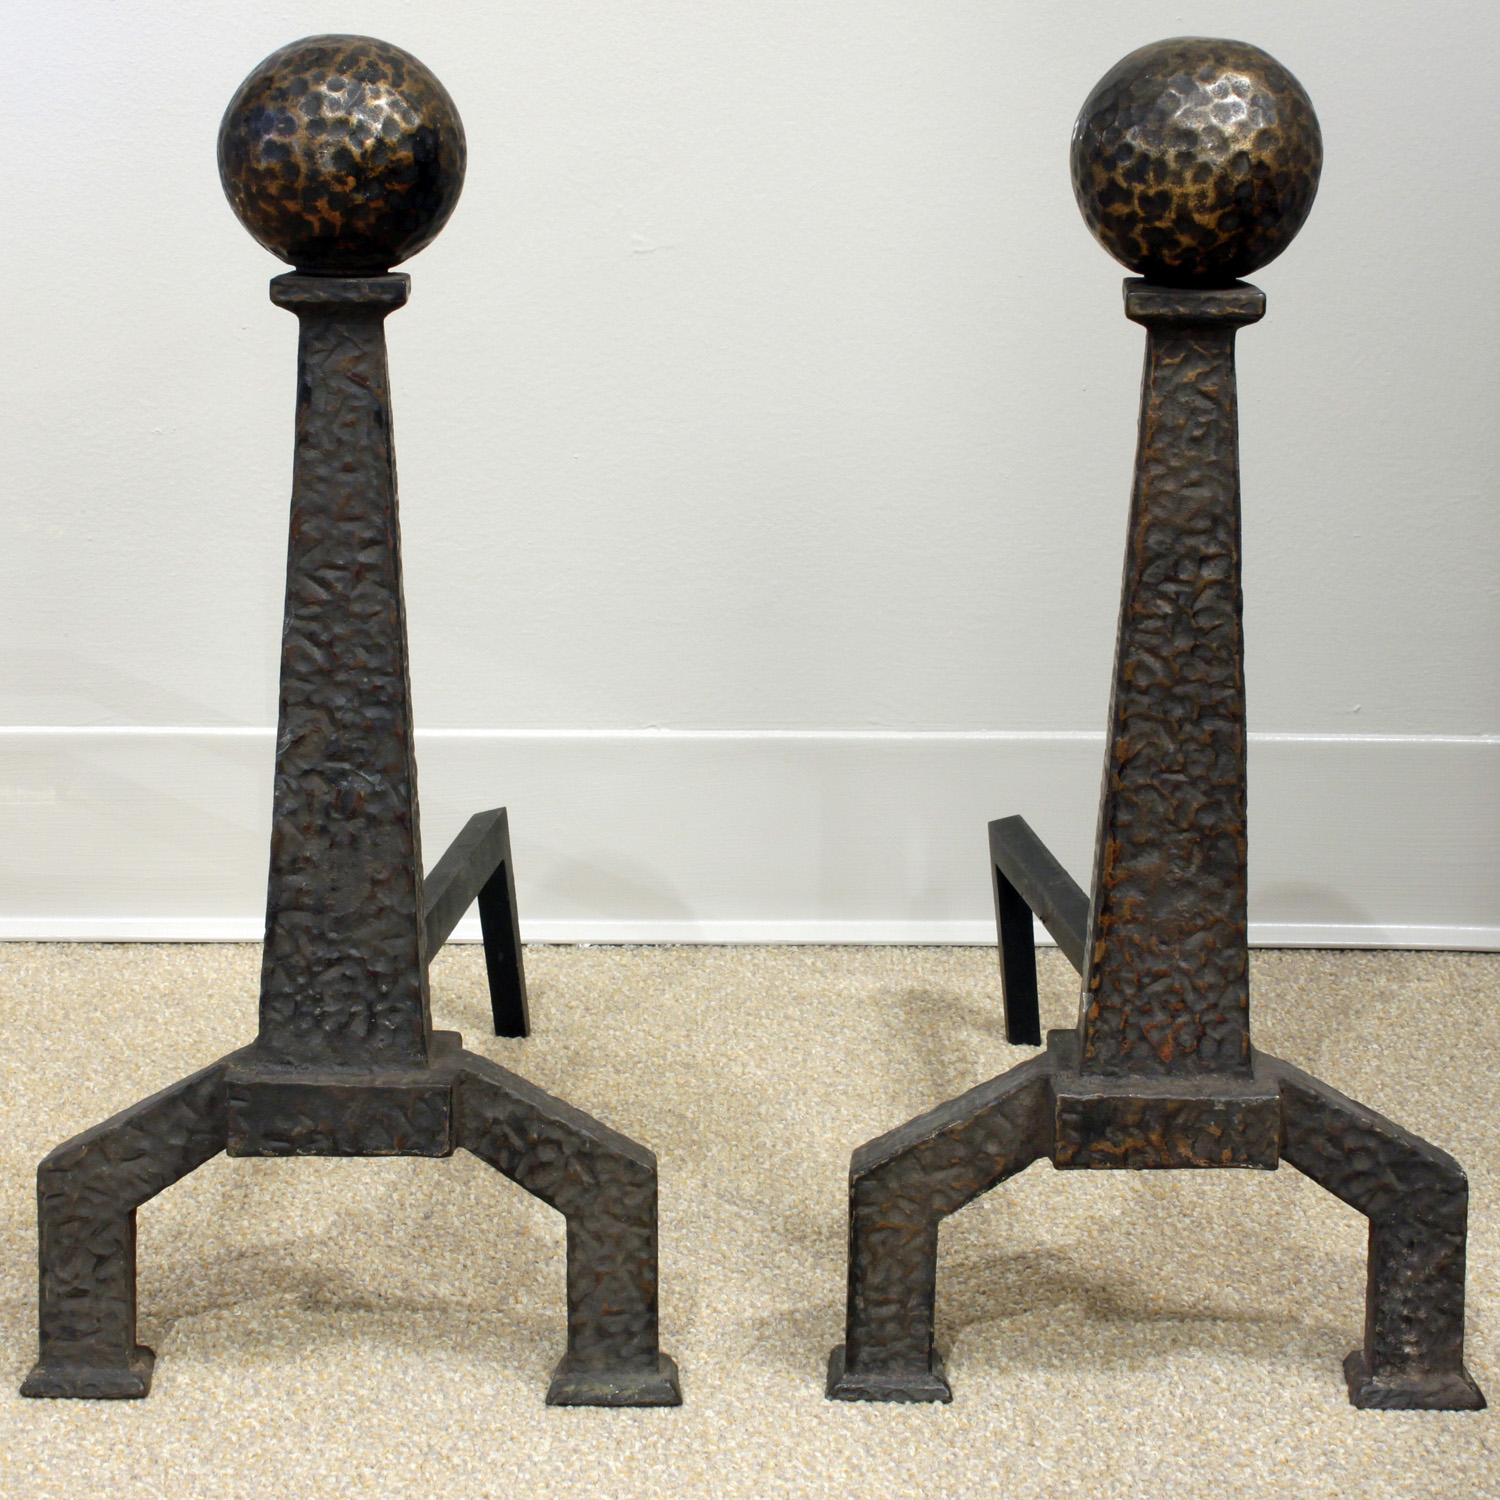 50's 35 hammered copper balls fireplace 65 hires main.jpg